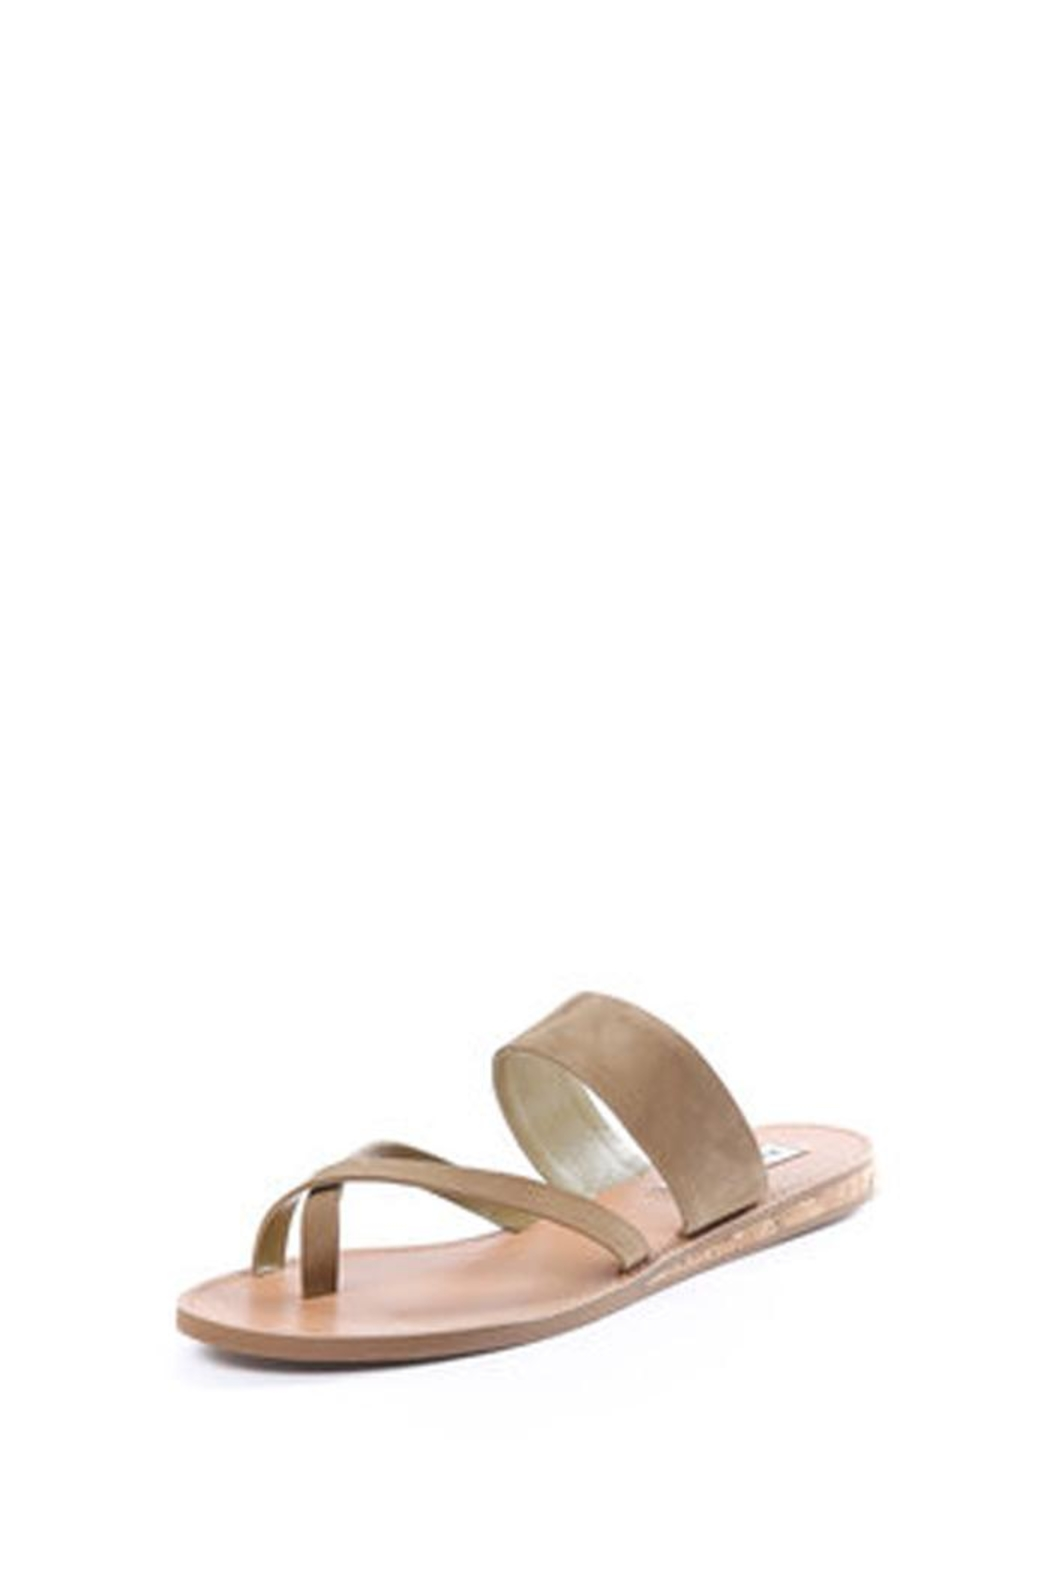 7f09ee09c9f Steve Madden Henly Sandal from New York by Luna — Shoptiques